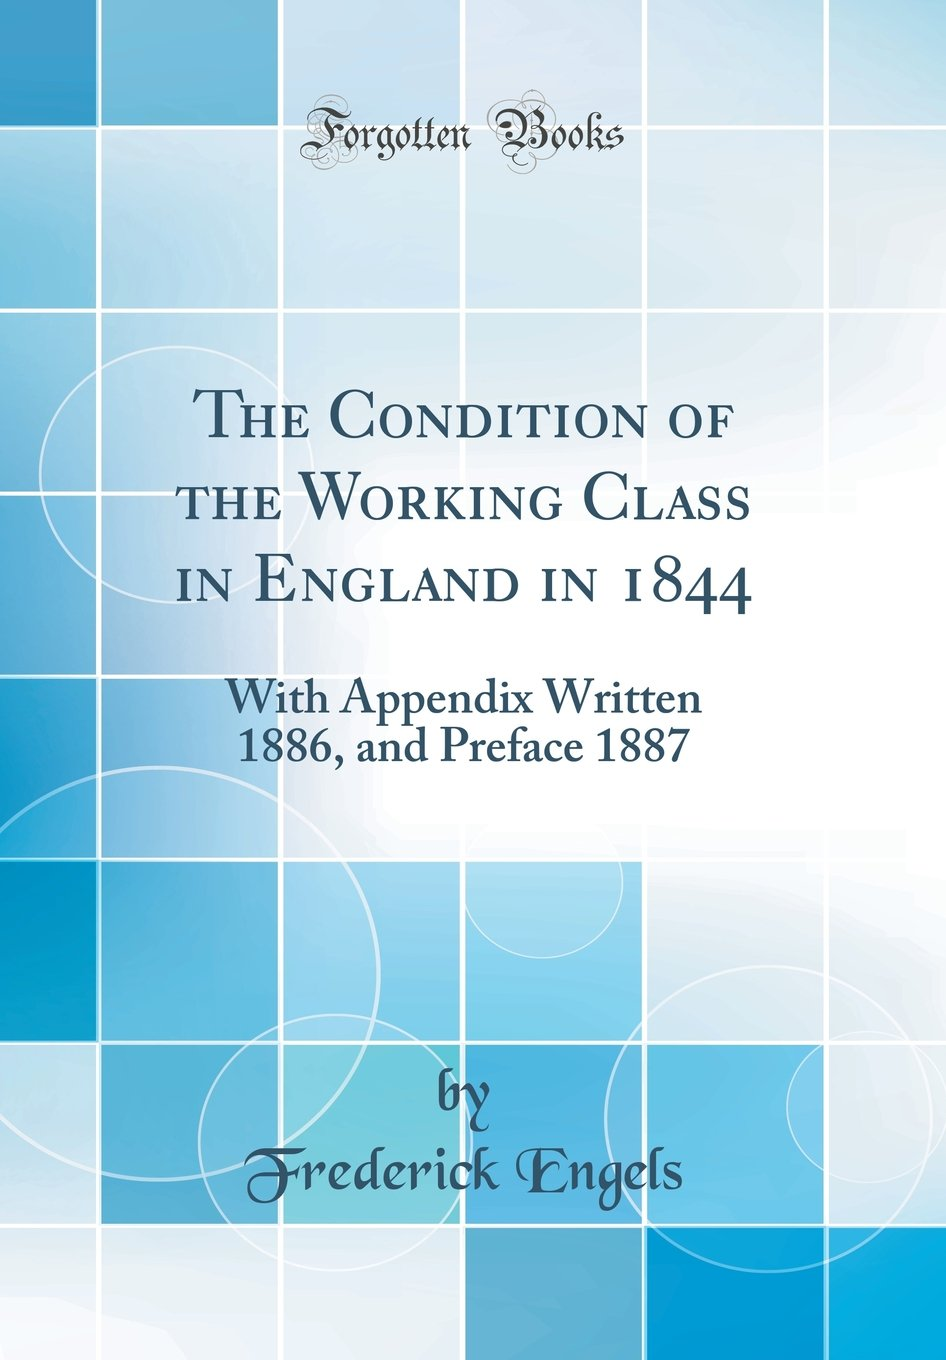 The Condition of the Working Class in England in 1844: With Appendix Written 1886, and Preface 1887 (Classic Reprint) pdf epub